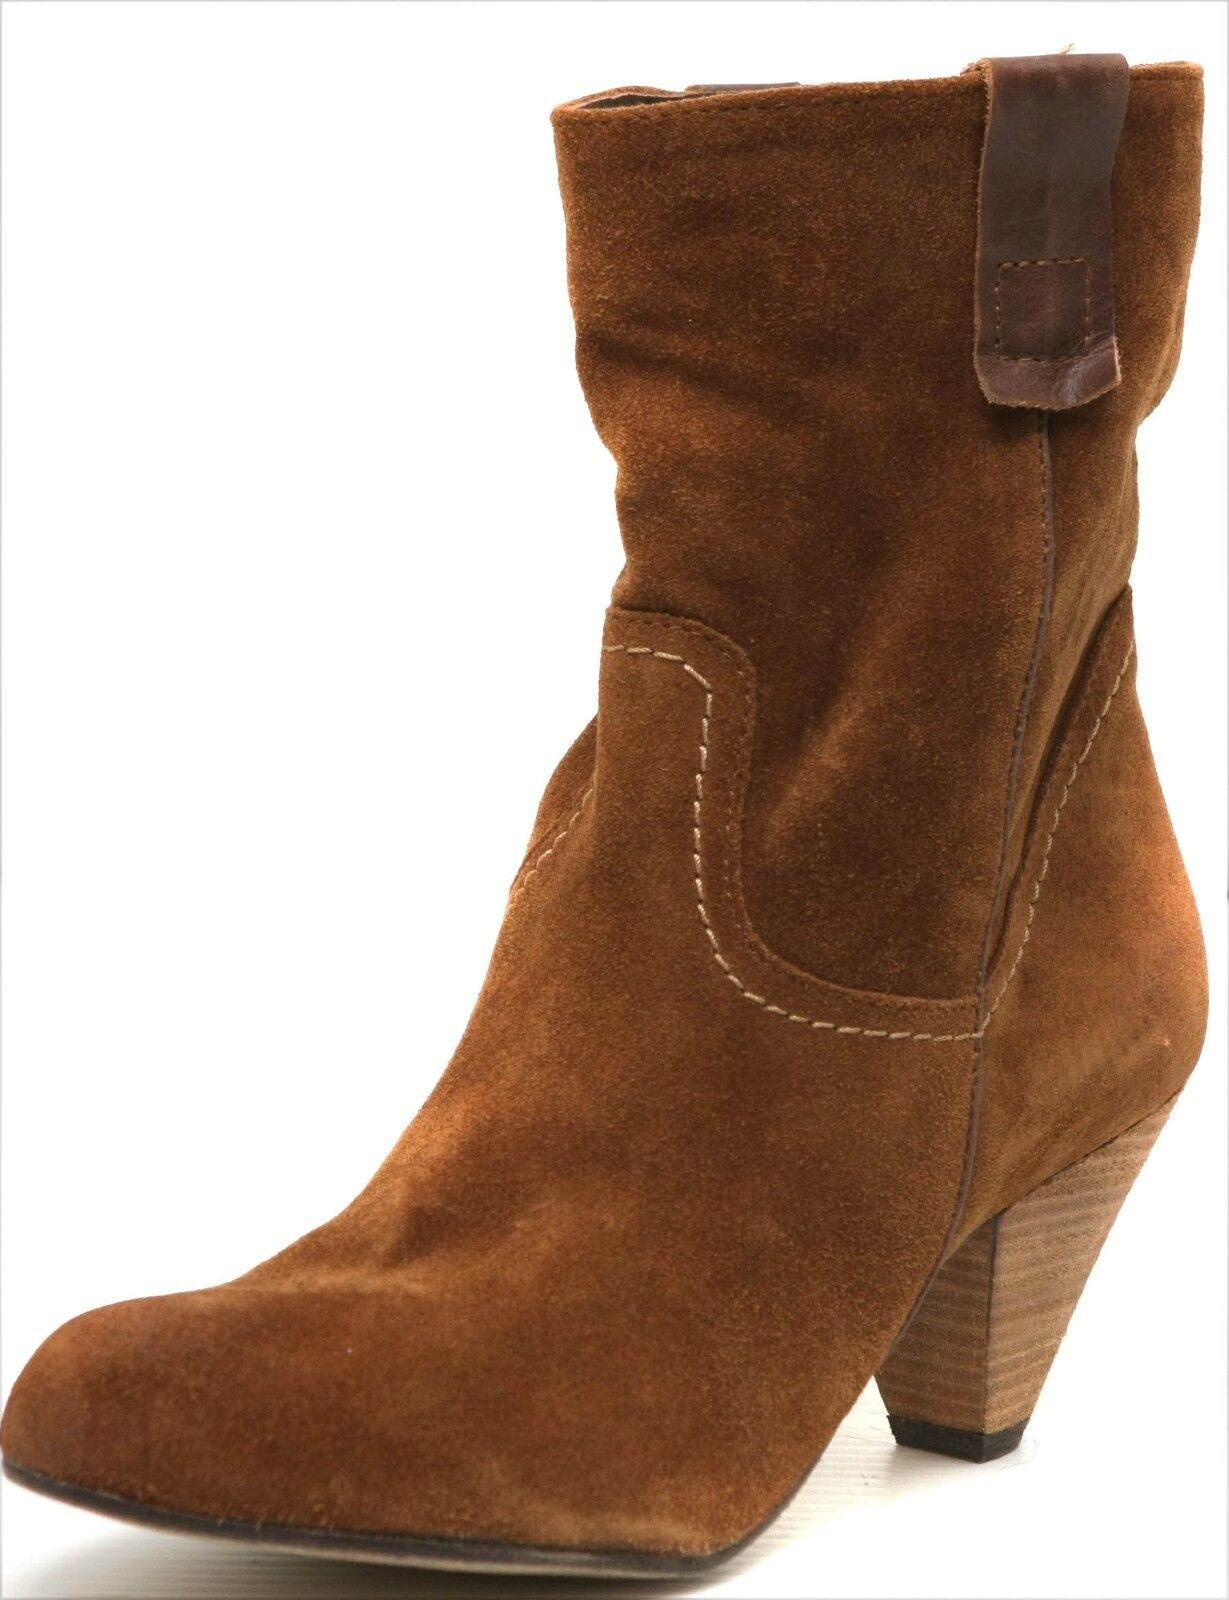 New Steve Madden Lanzzo suede women's boots sz 9